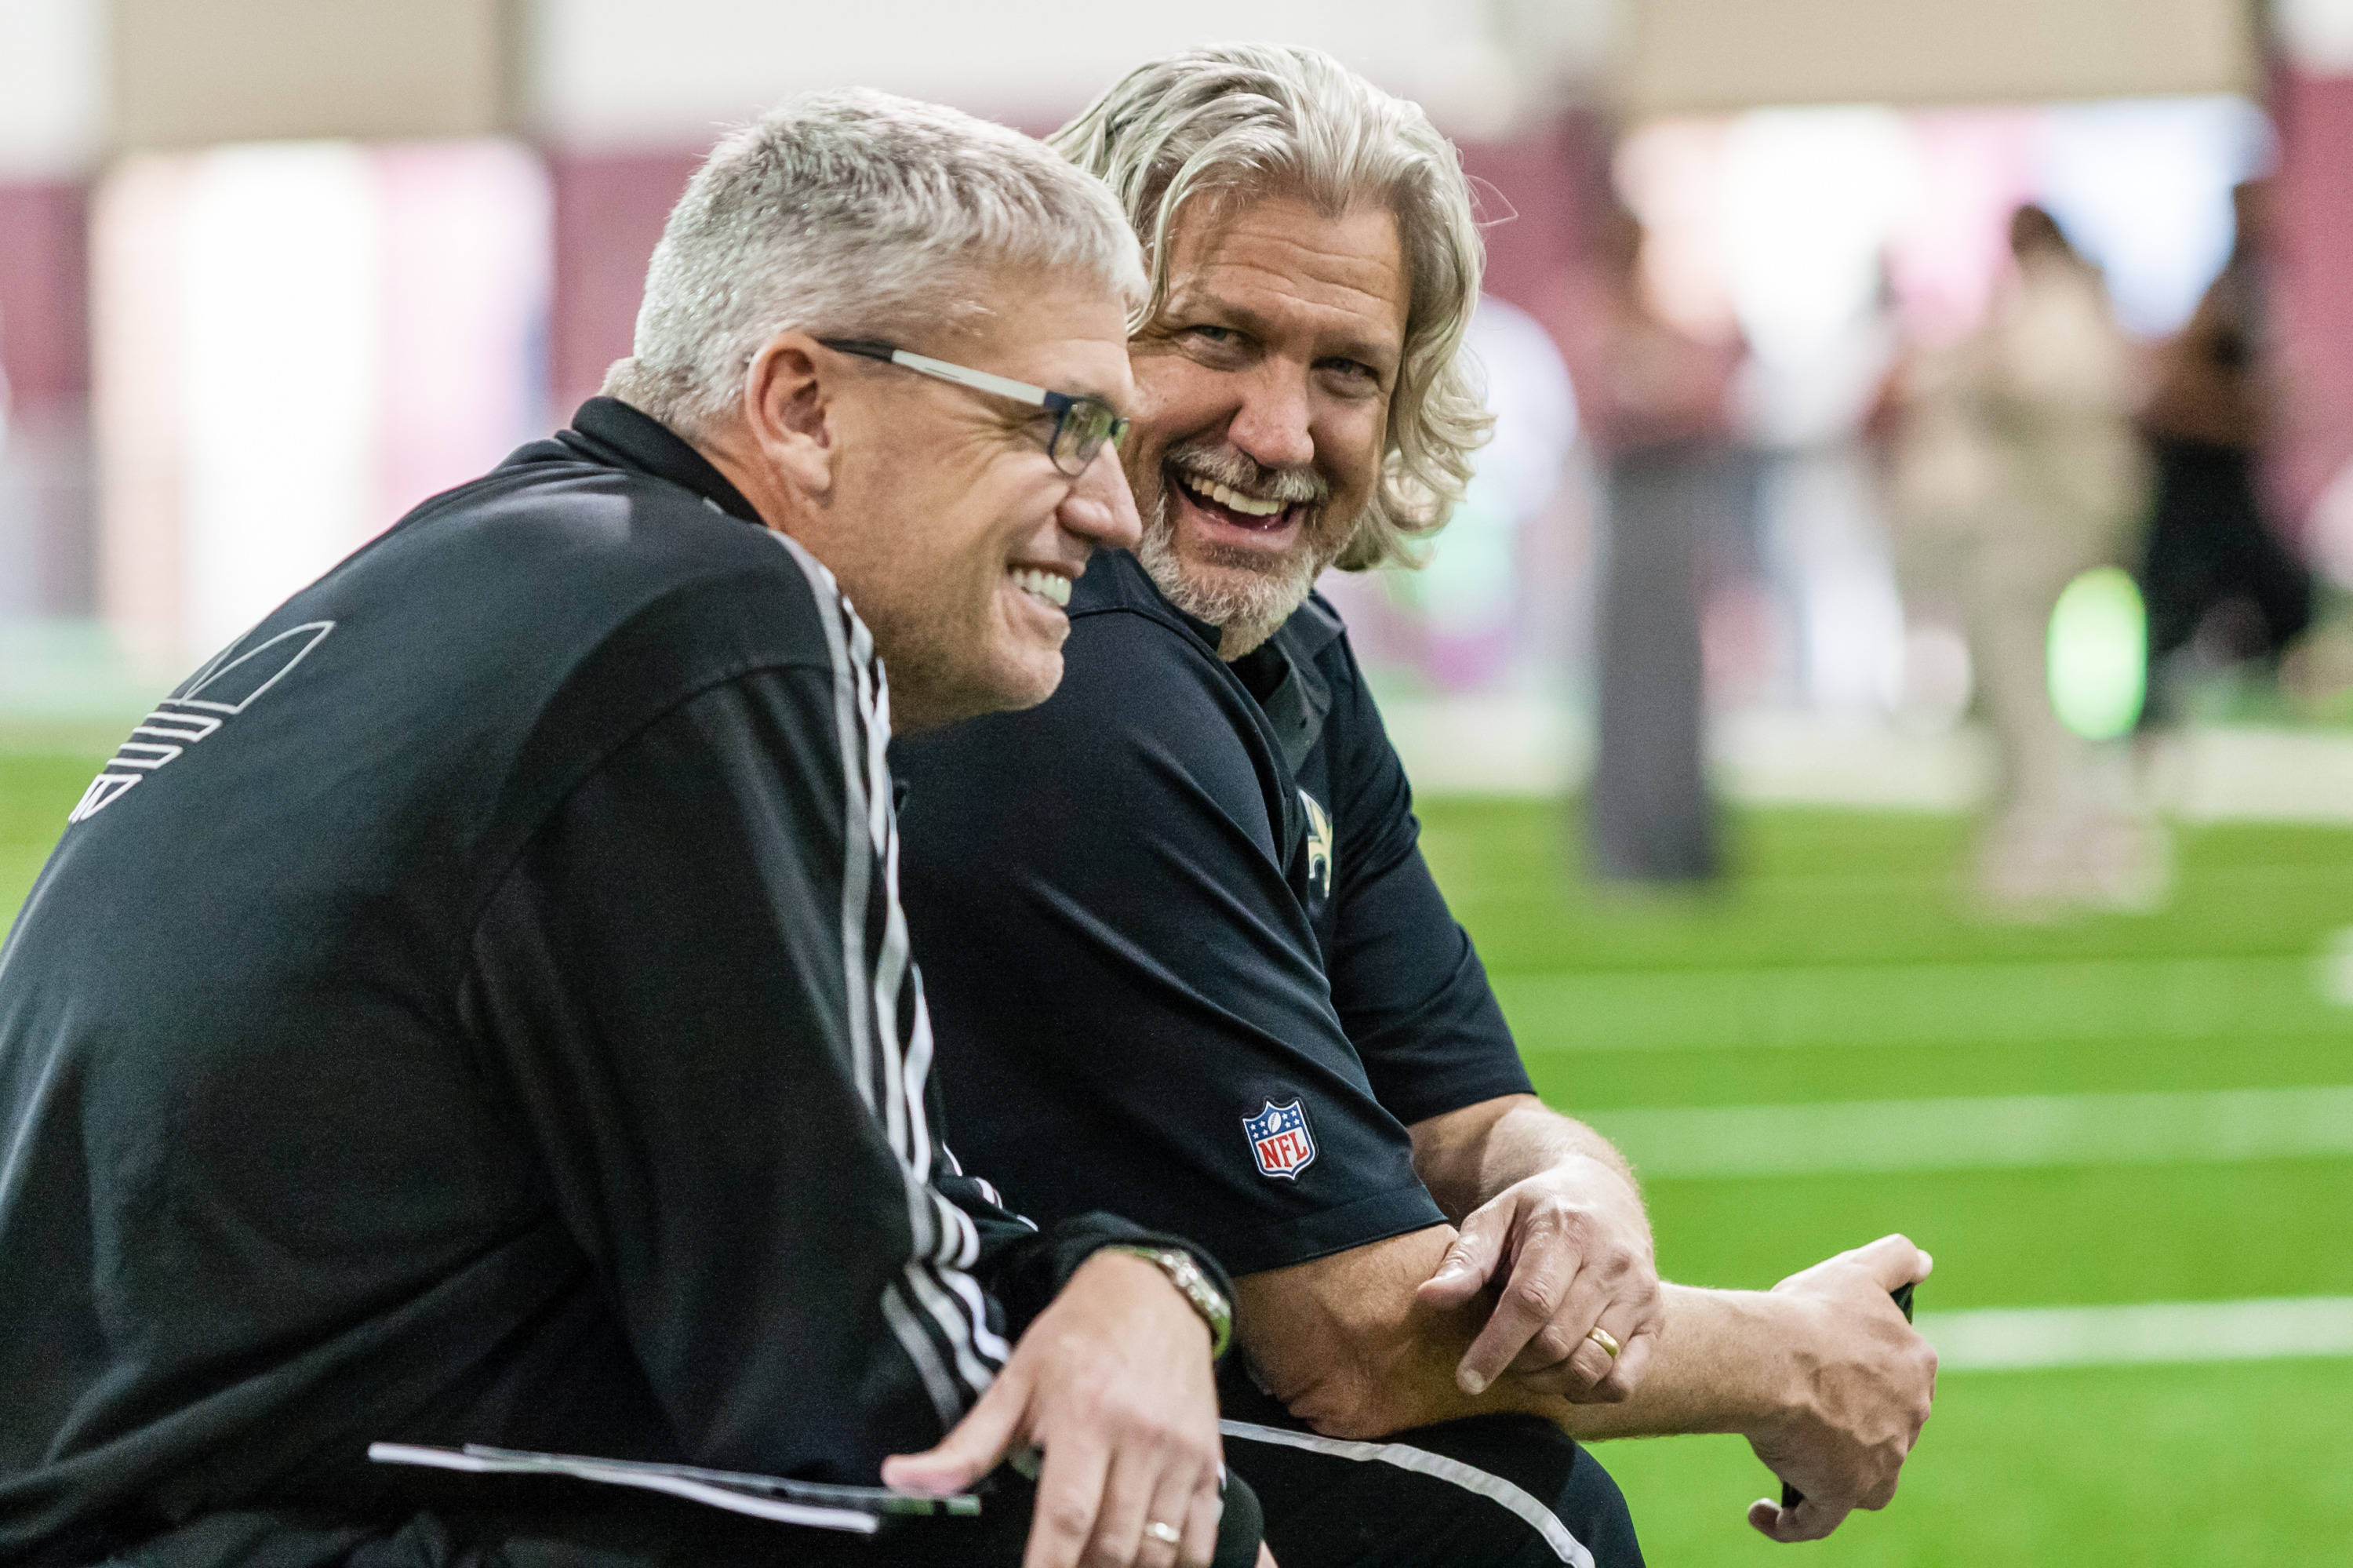 New York Jets coach Rex Ryan and New Orleans Saints defensive coordinator Rob Ryan